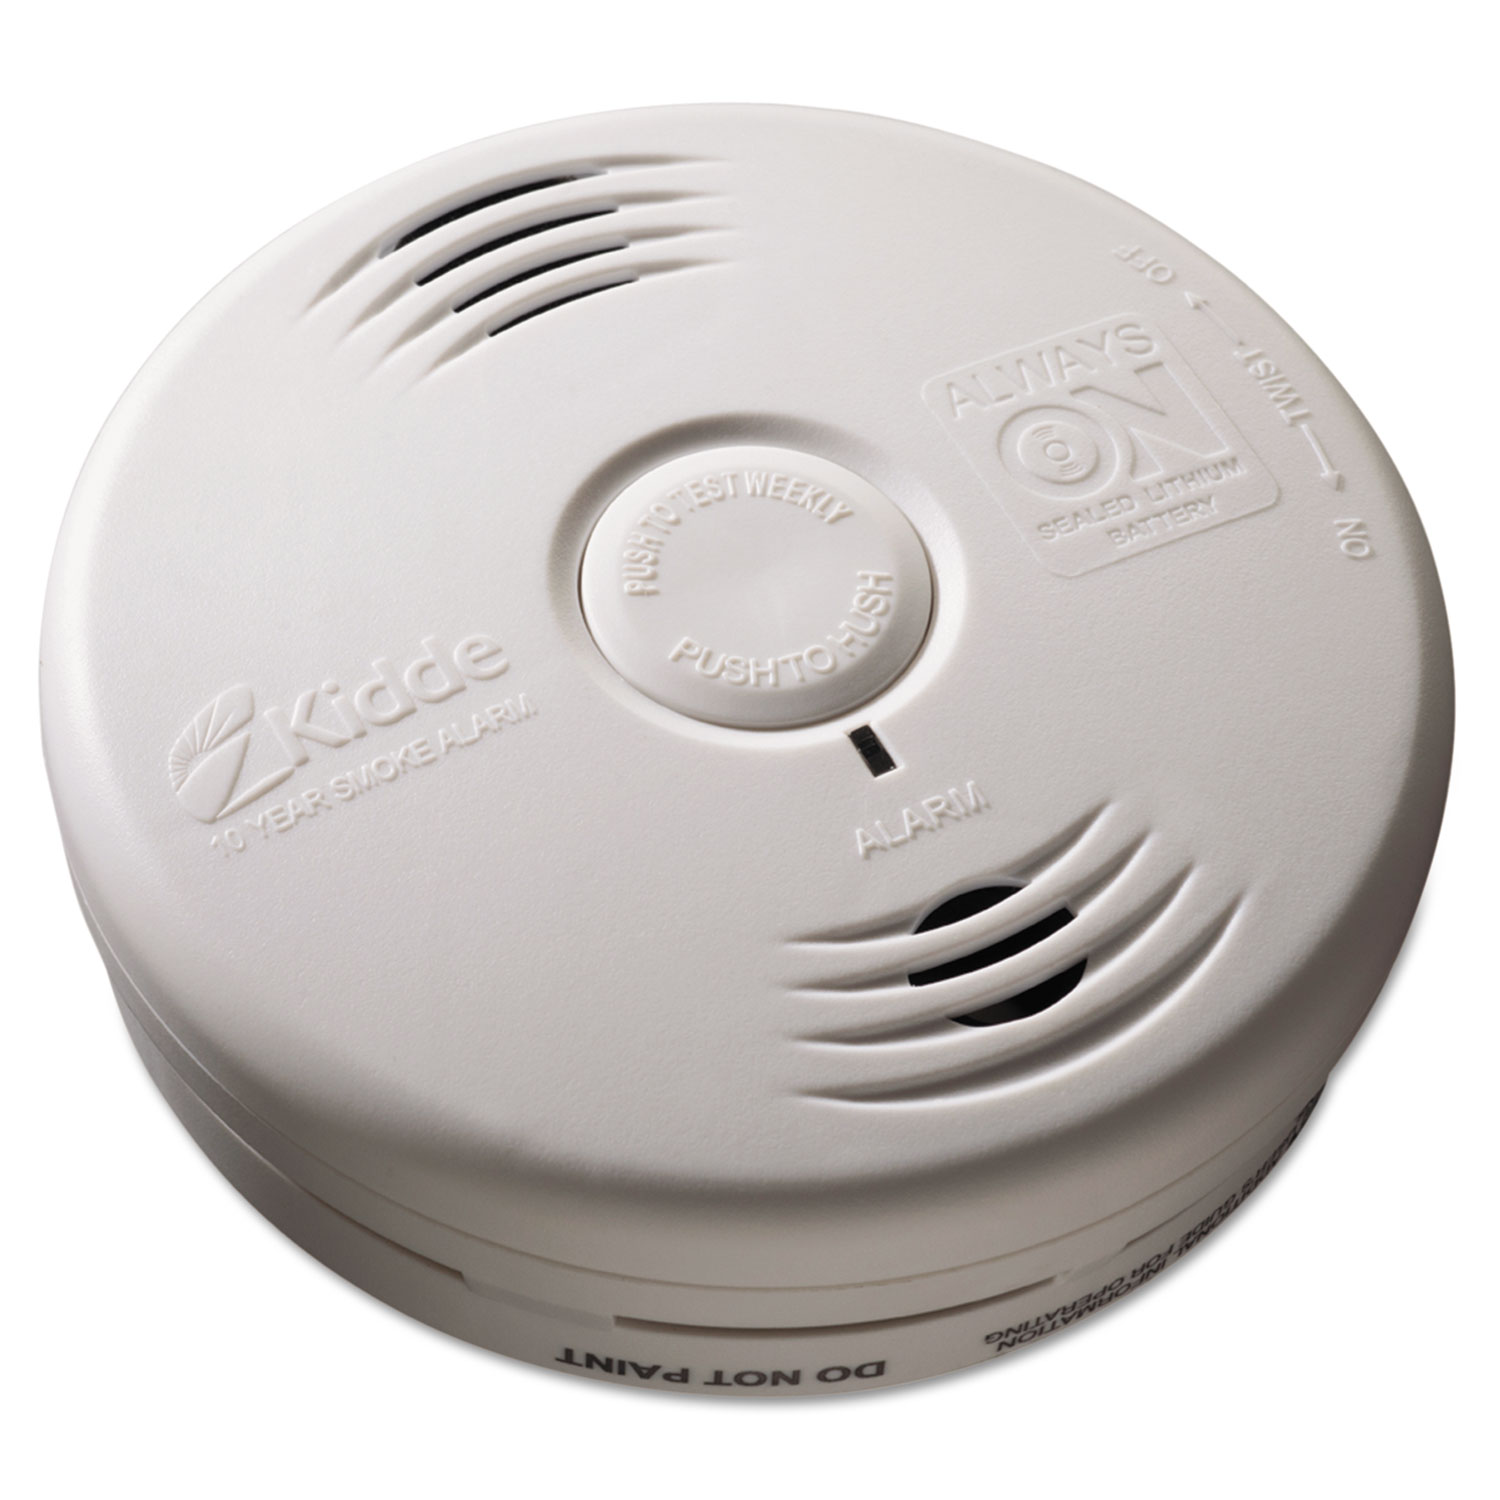 Bedroom Smoke Alarm w/Voice Alarm, Lithium Battery, 5.22Dia x 1.6Depth